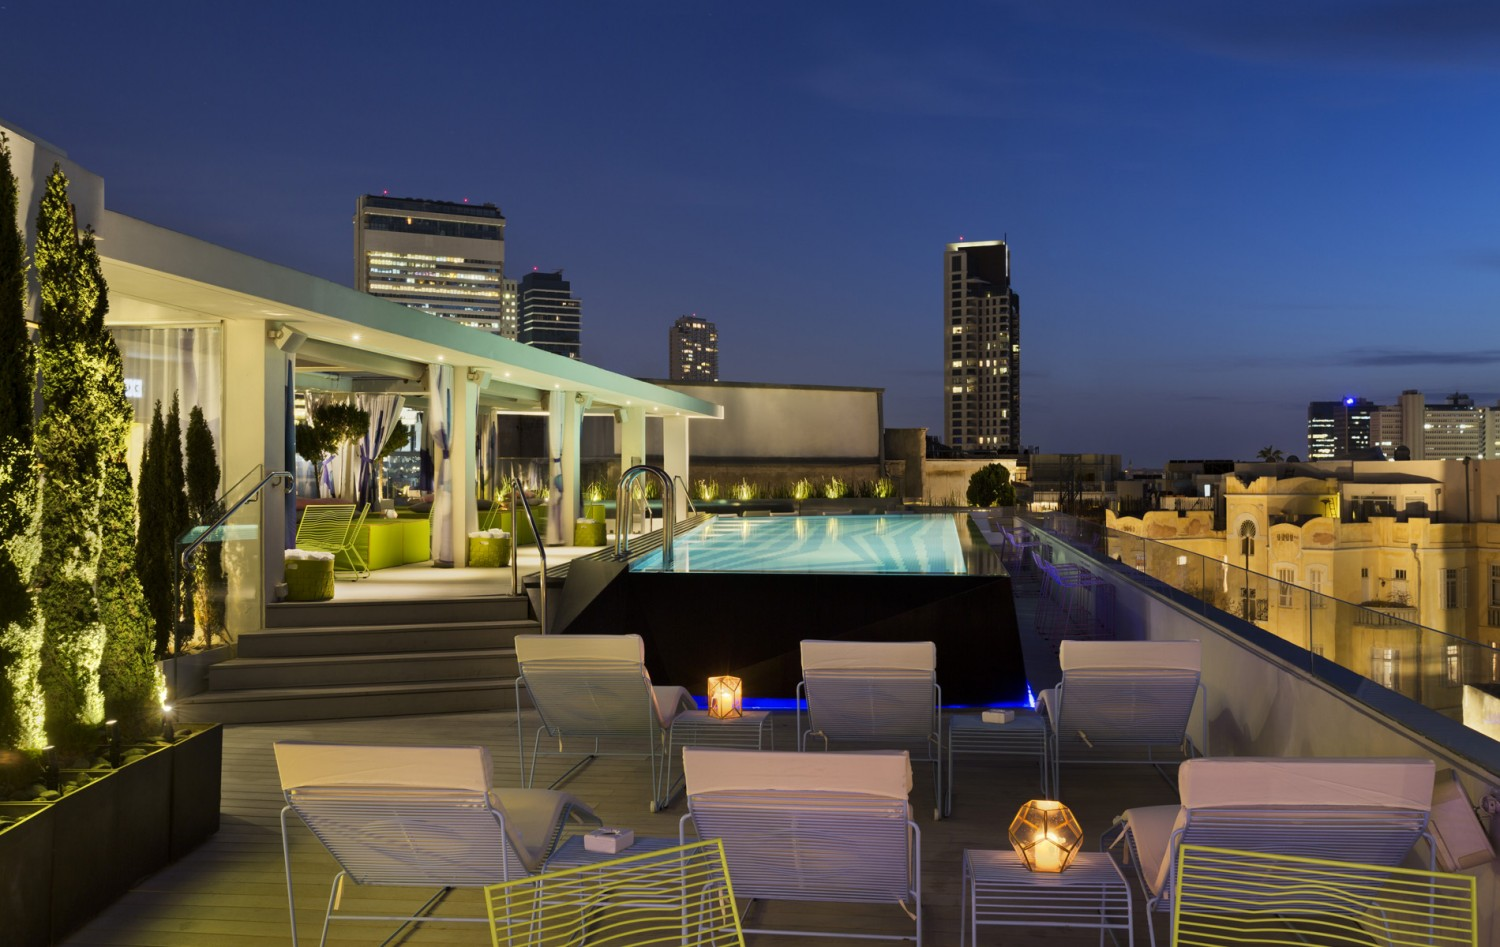 Brown hotels collection of boutique hotels in tel aviv for Boutique hotel israel